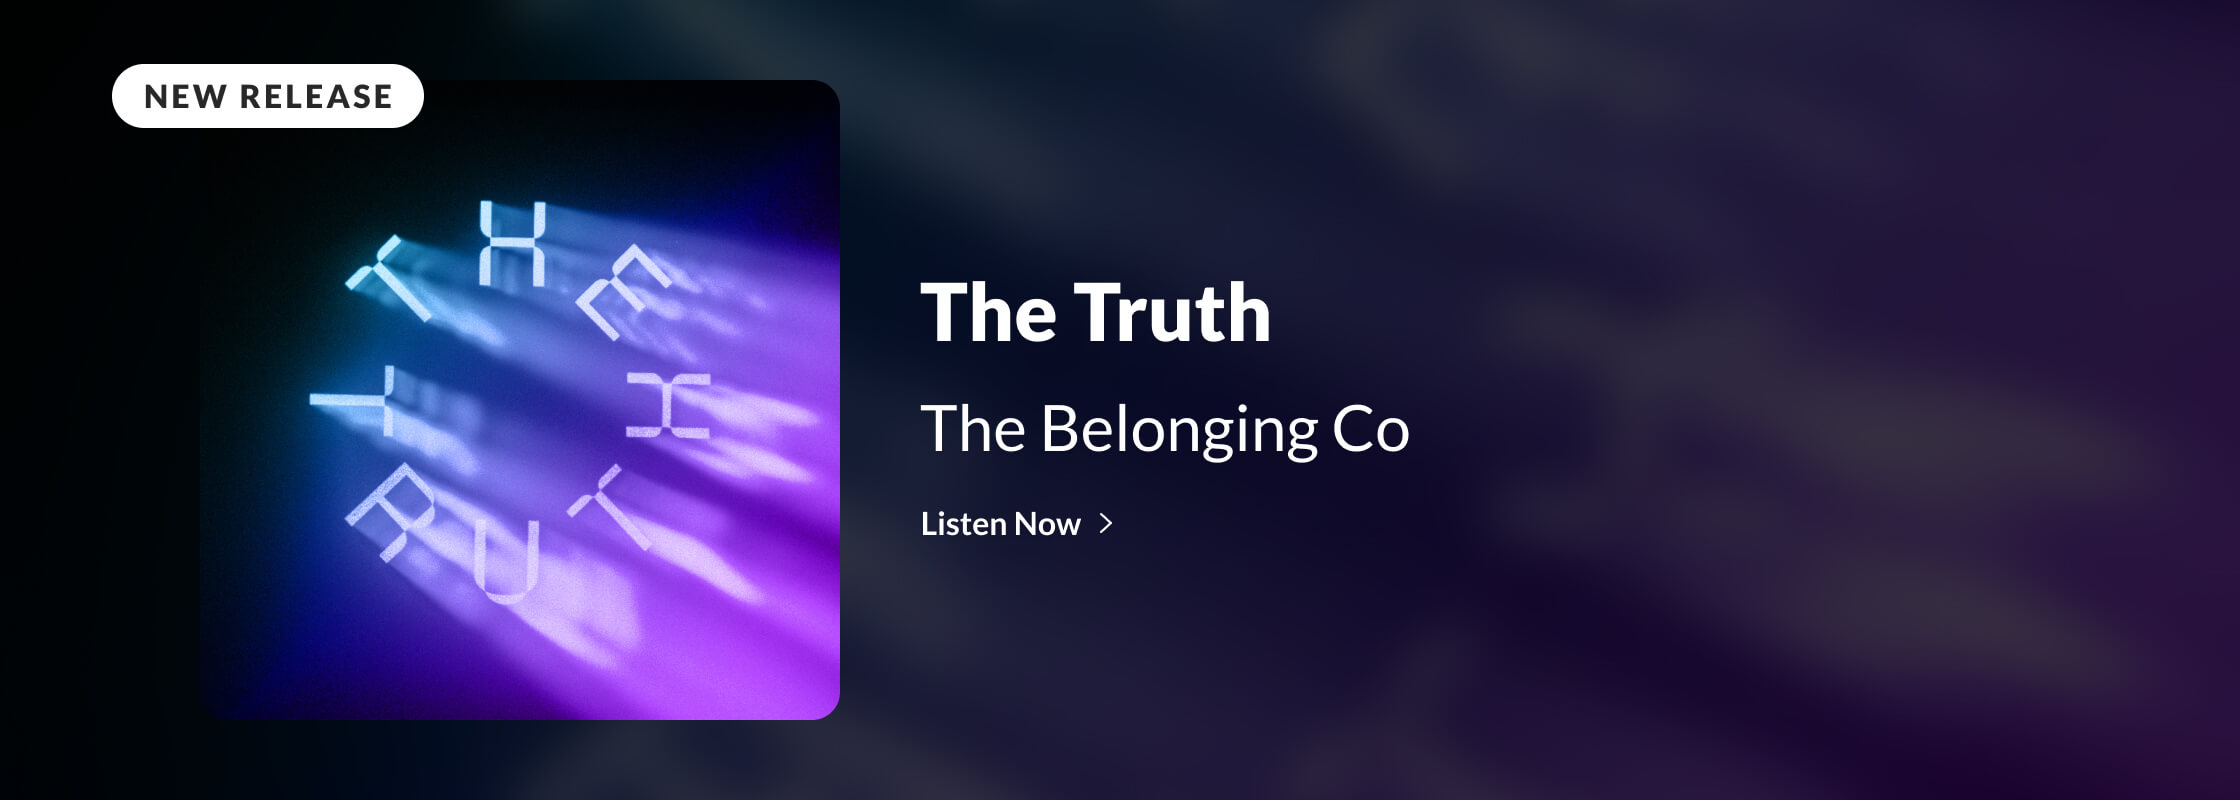 The Belonging Co | The Truth